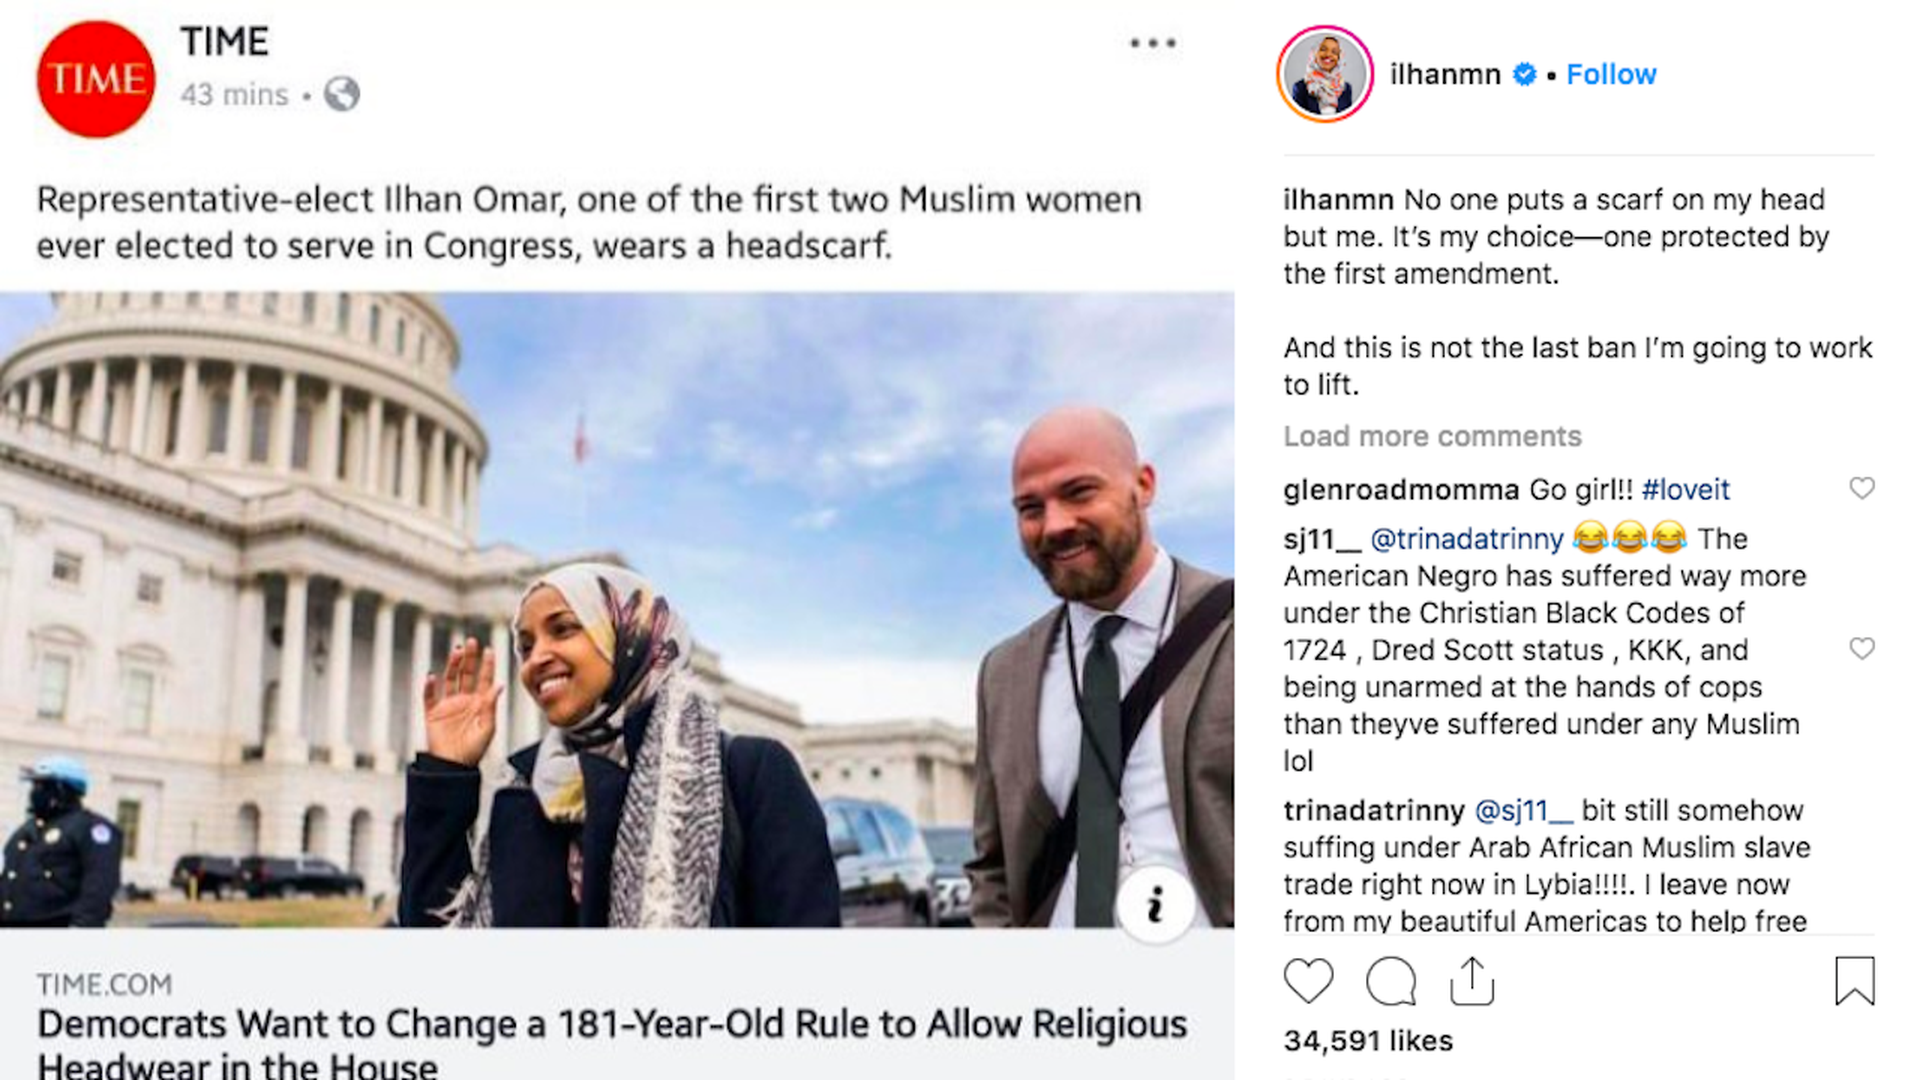 Screenshot from Ilhan Omar's Instagram profile